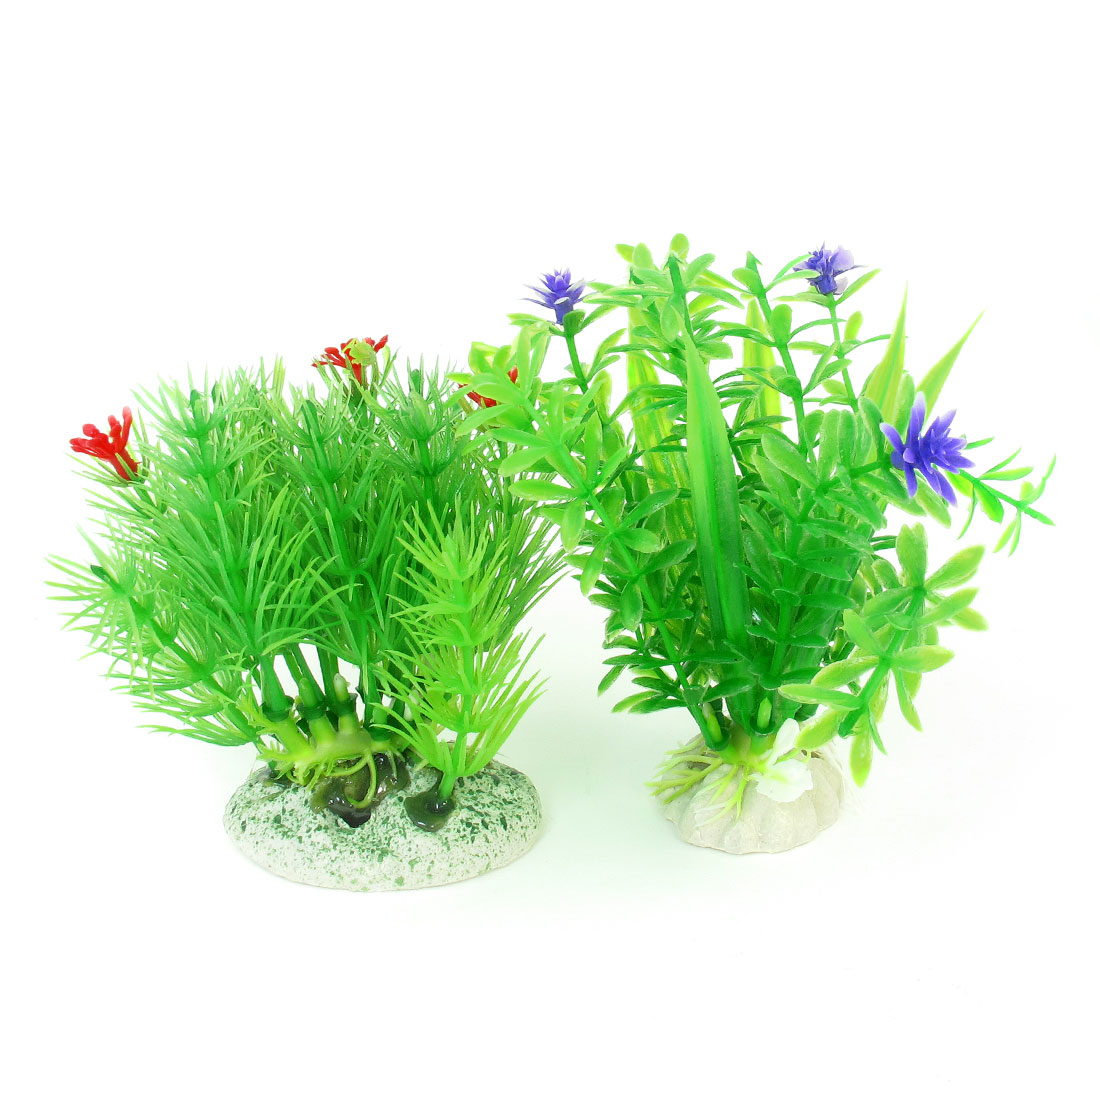 2 Pcs Green Emulational Aquatic Fish Tank Aquarium Grasses Ornament